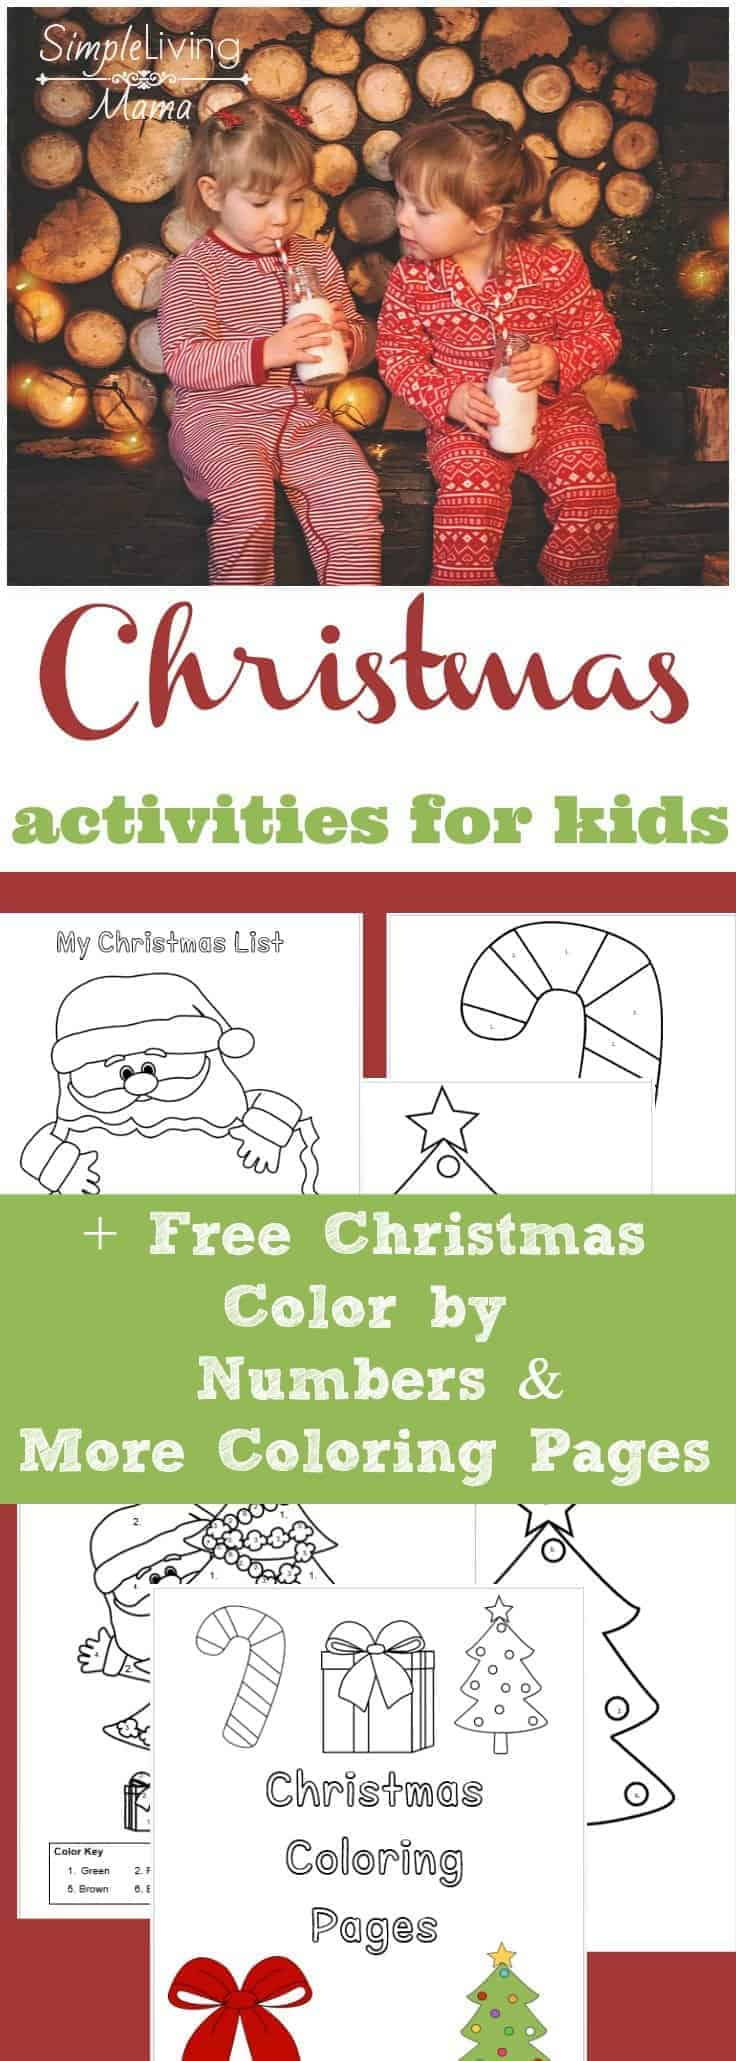 Christmas Activities for Kids + Free Printable Christmas Color By ...